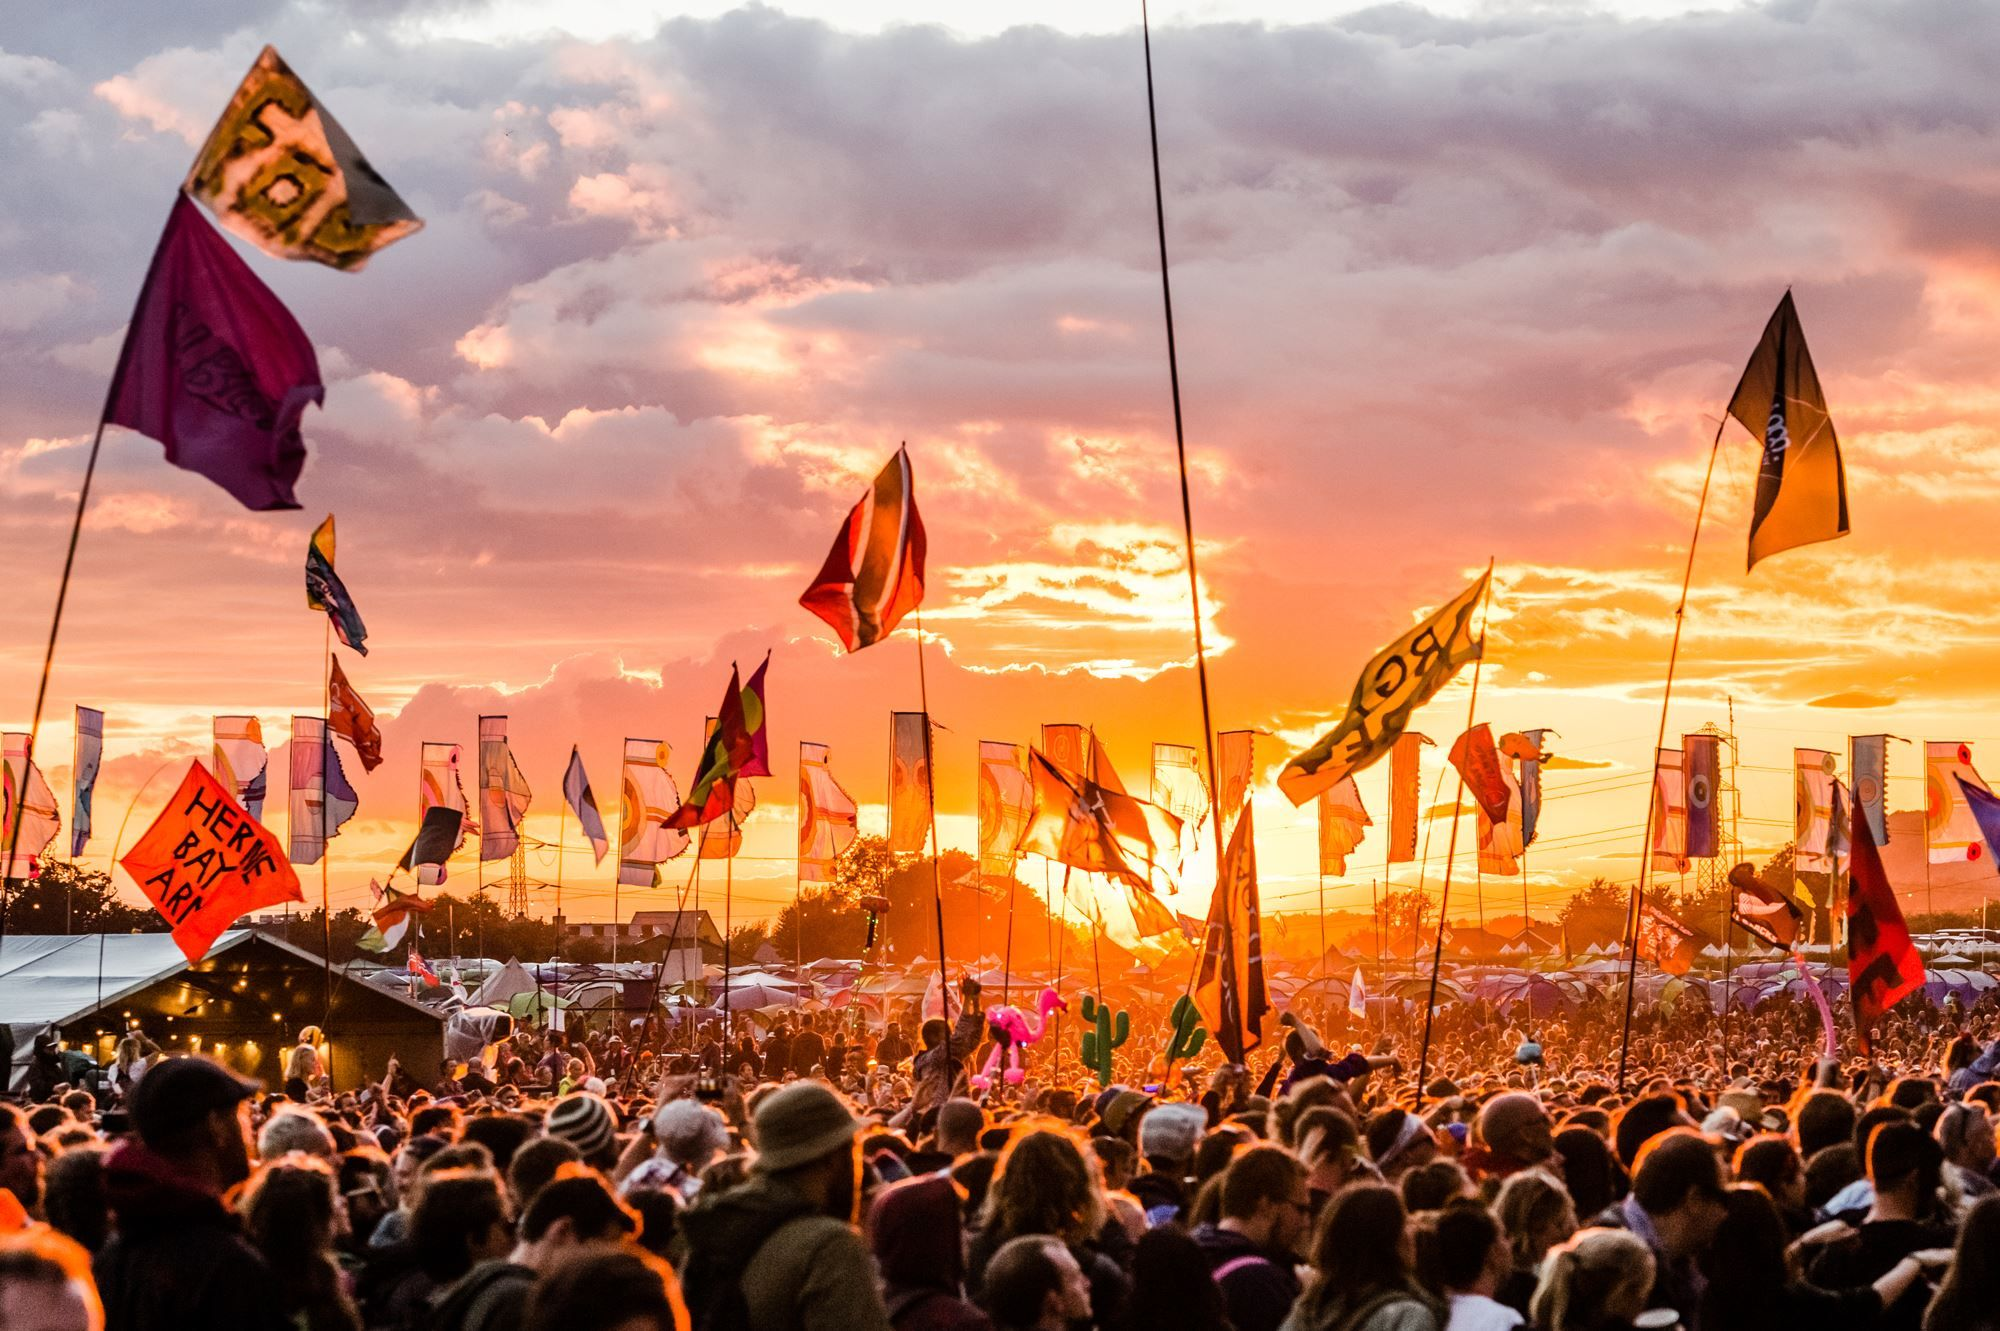 From Coachella To Glastonbury: The Best Global Music Festivals To Look Forward To In 2021